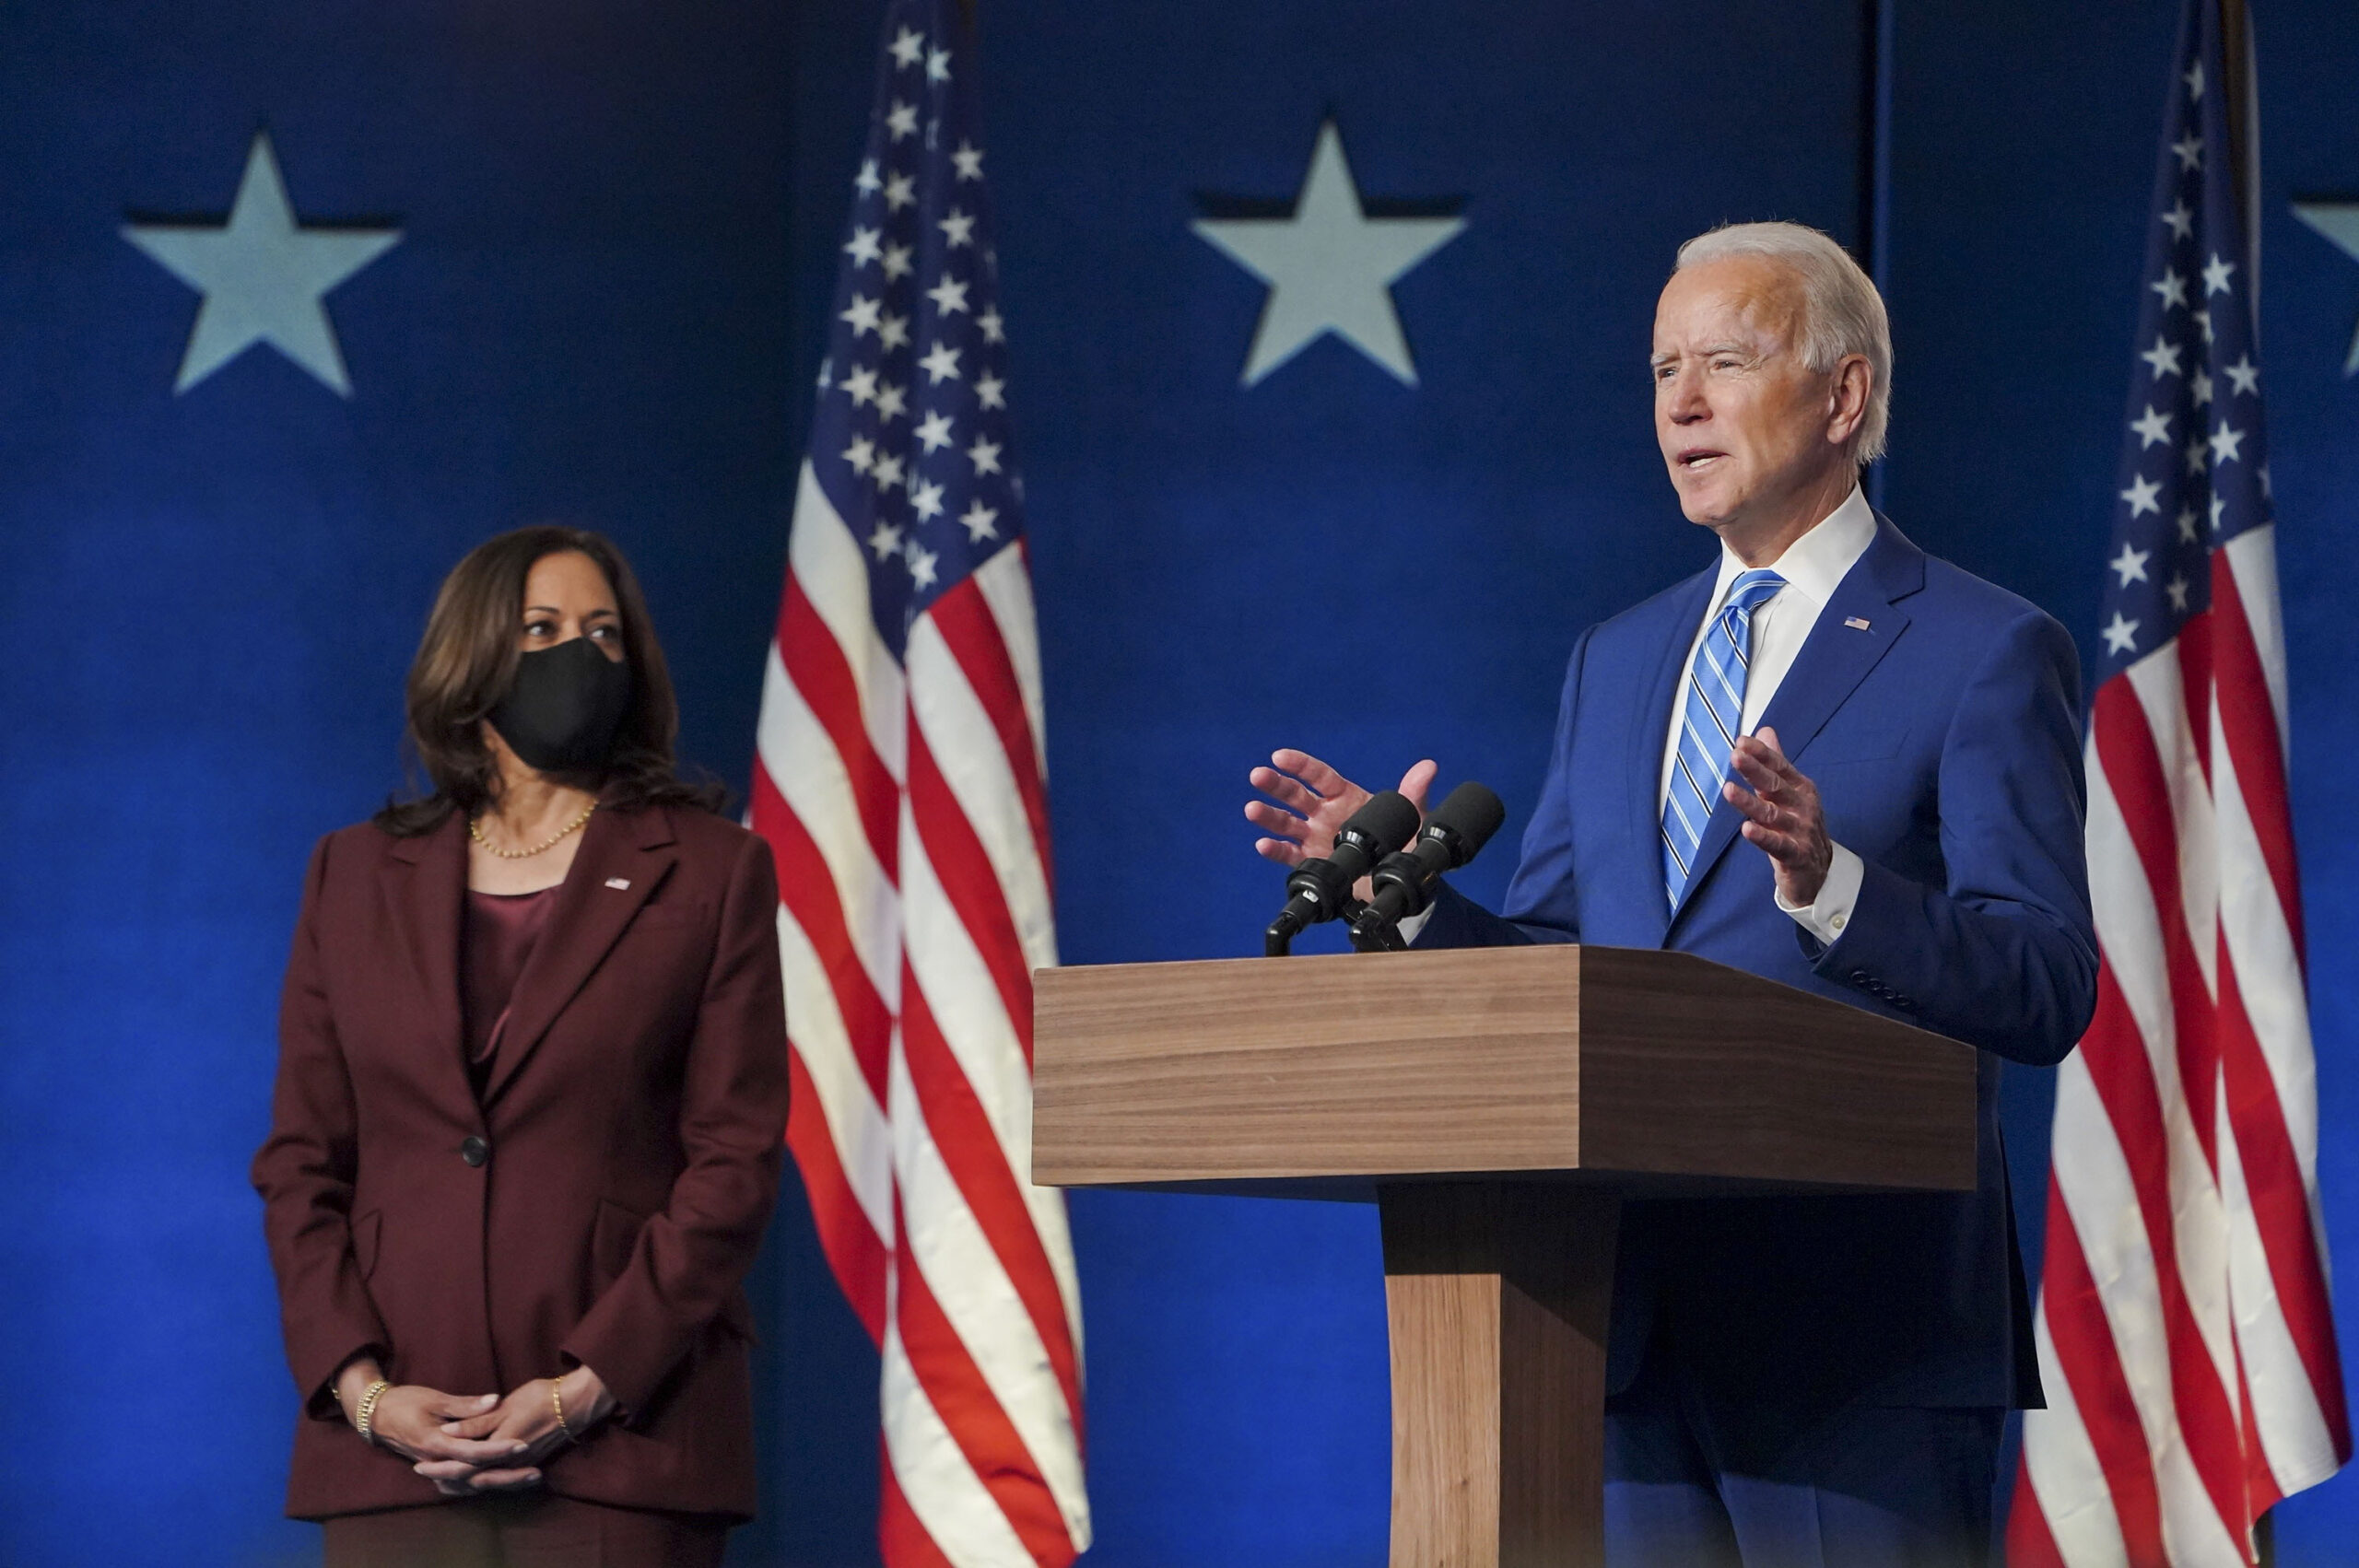 Democrat presidential candidate Joe Biden with his running mate Kamala Harris.  Source : @JoeBiden